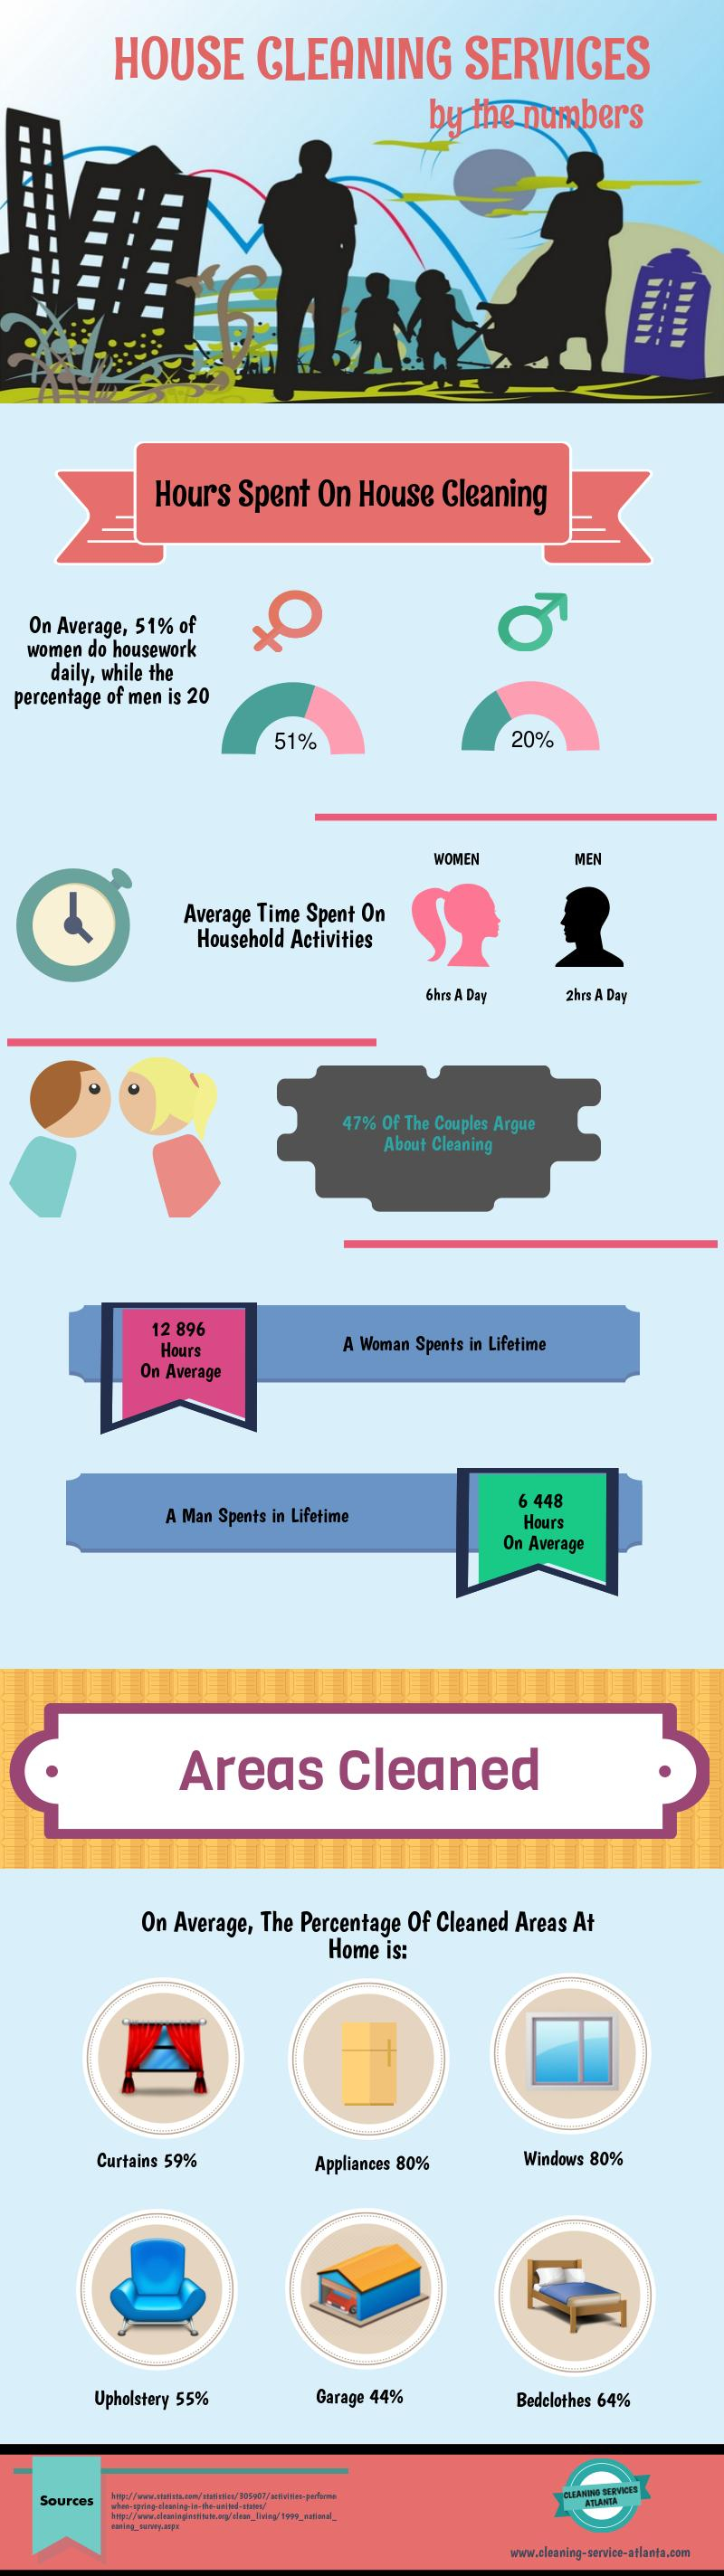 An infographic presenting the importance of the house cleaning services for every household.